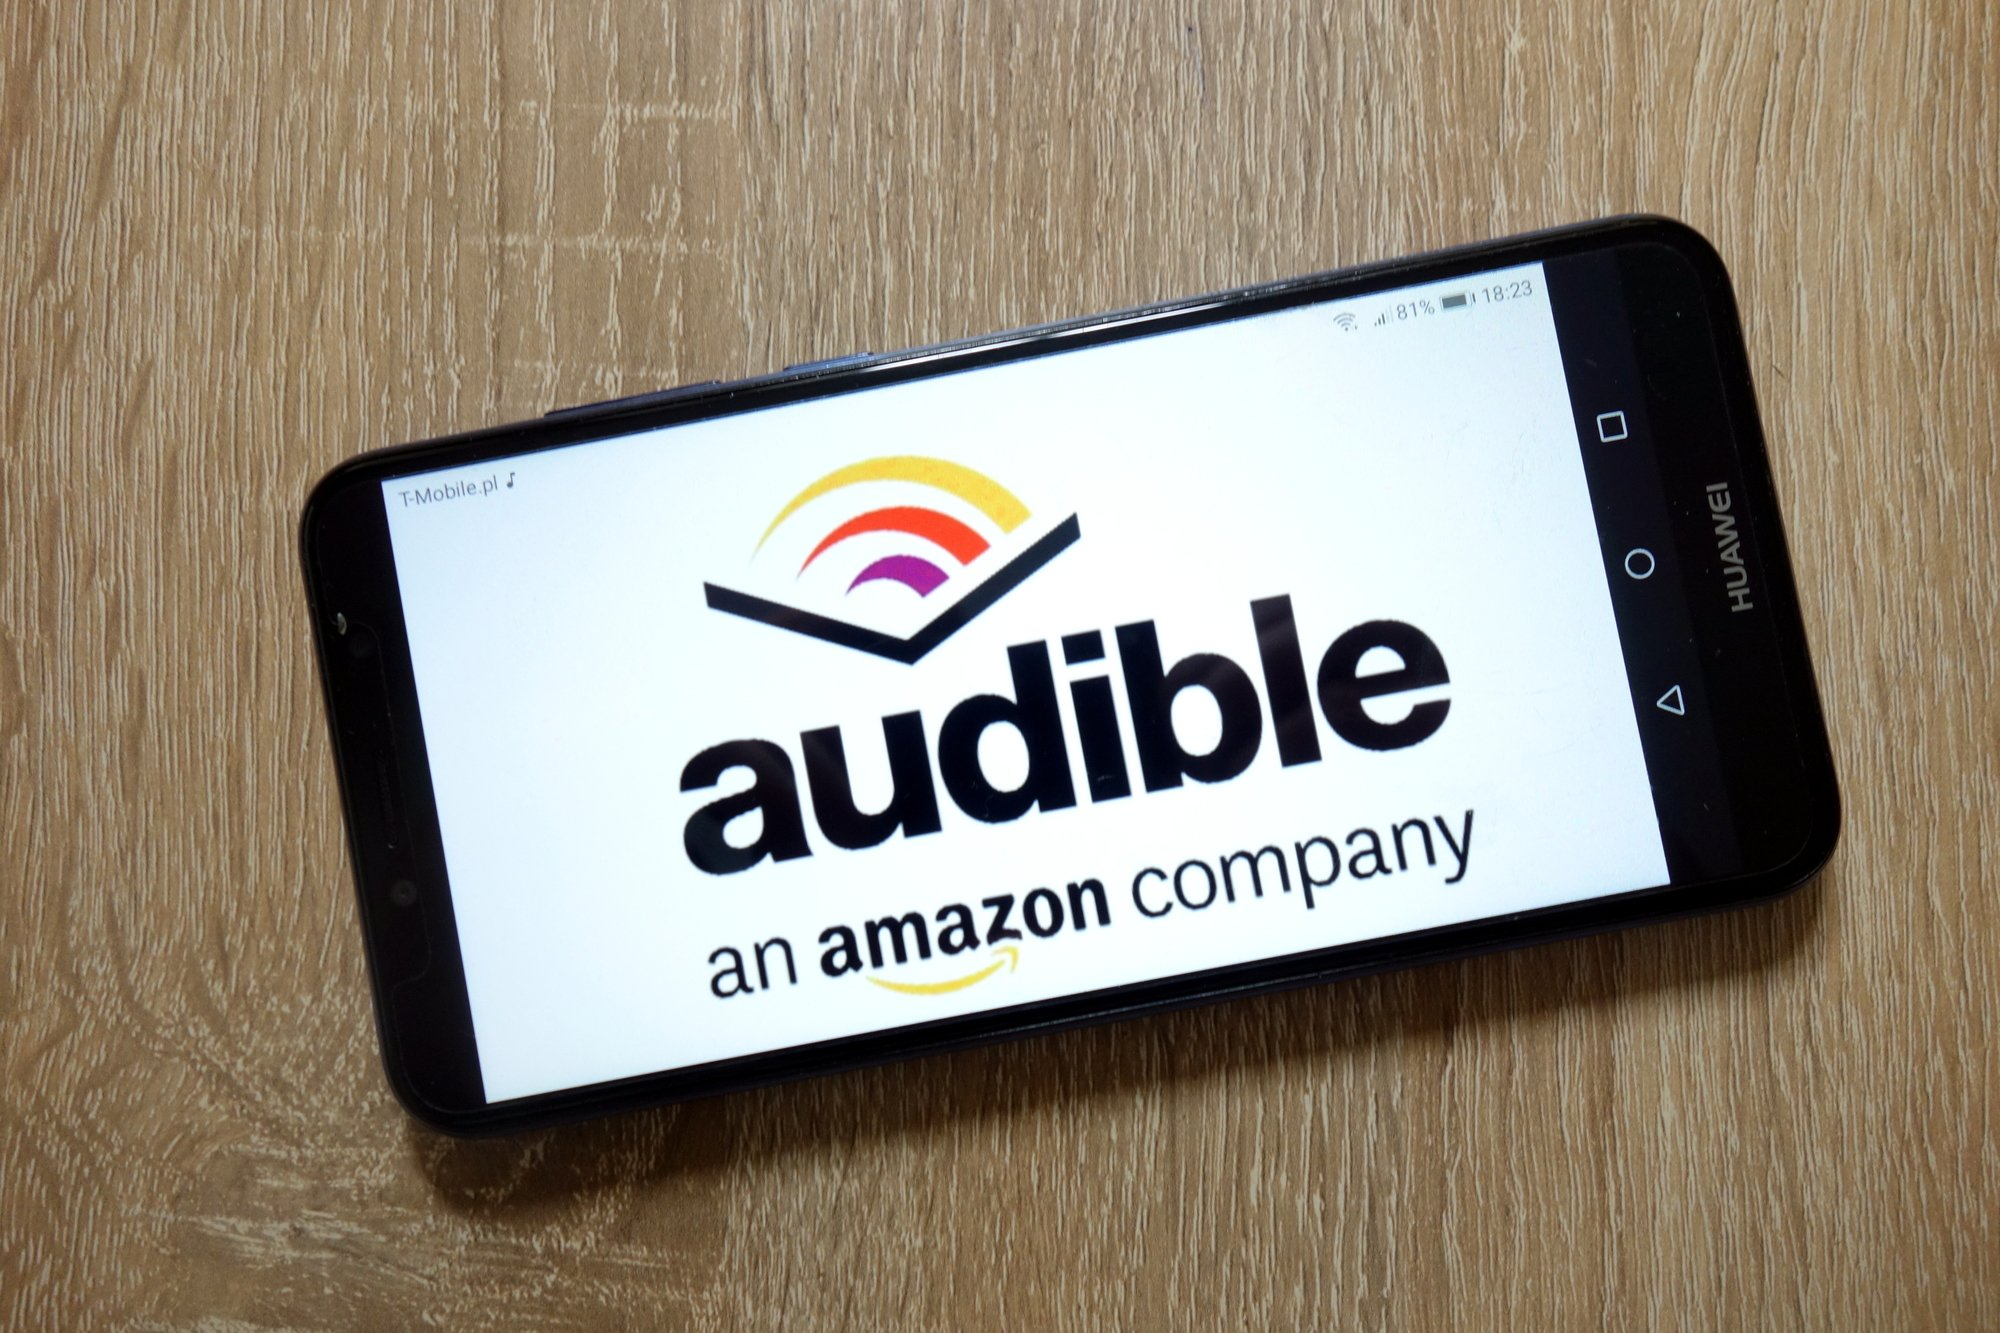 Amazon Audible Cancel Membership Audible Audio Membership Credit Class Action Settlement